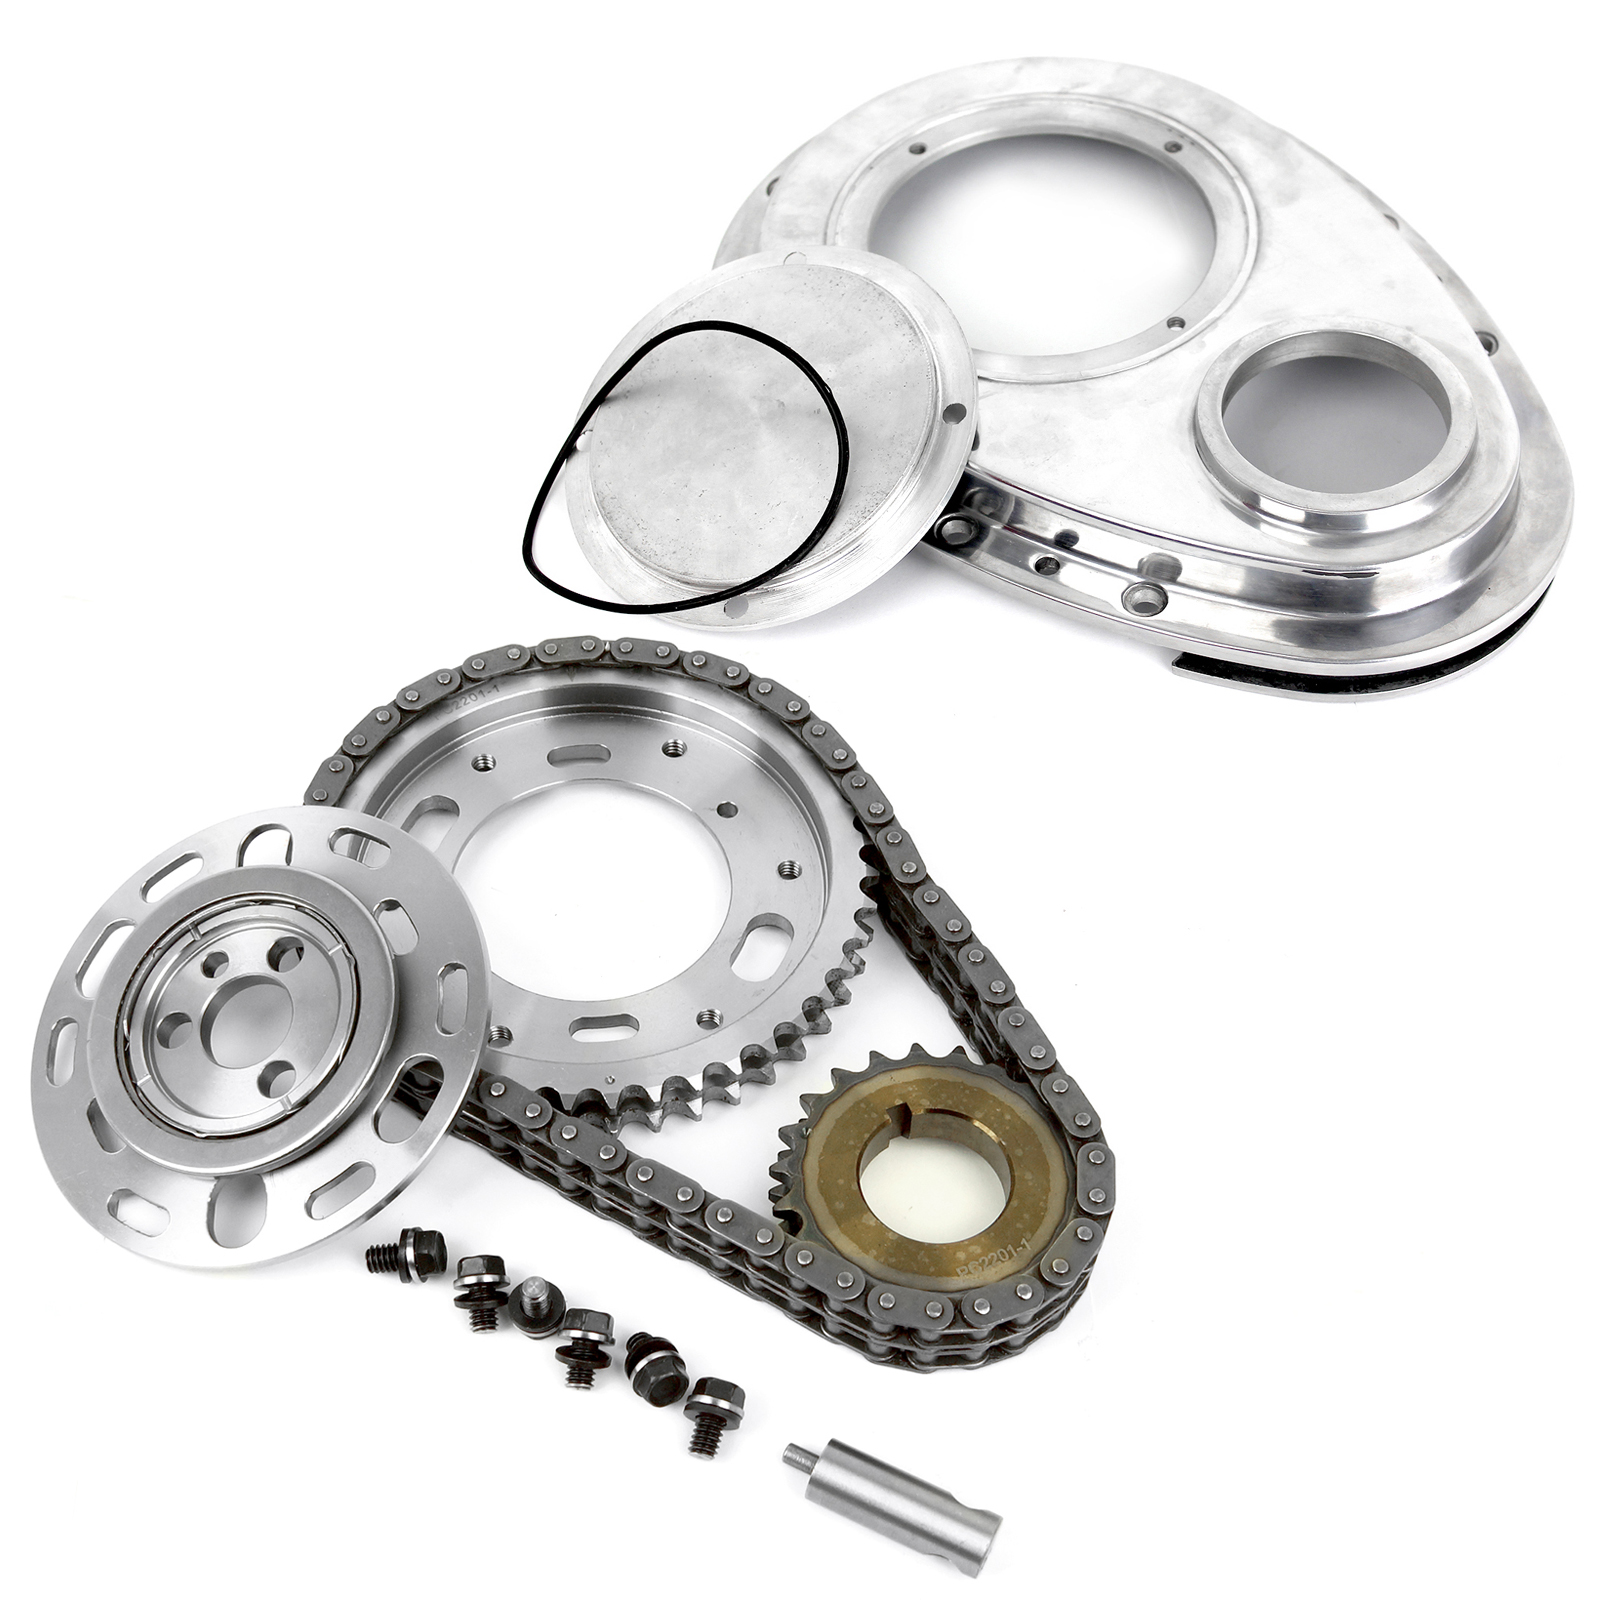 Chevy SBC 350 Double Roller 2pc Adj Billet Steel Timing Chain & Cover Kit